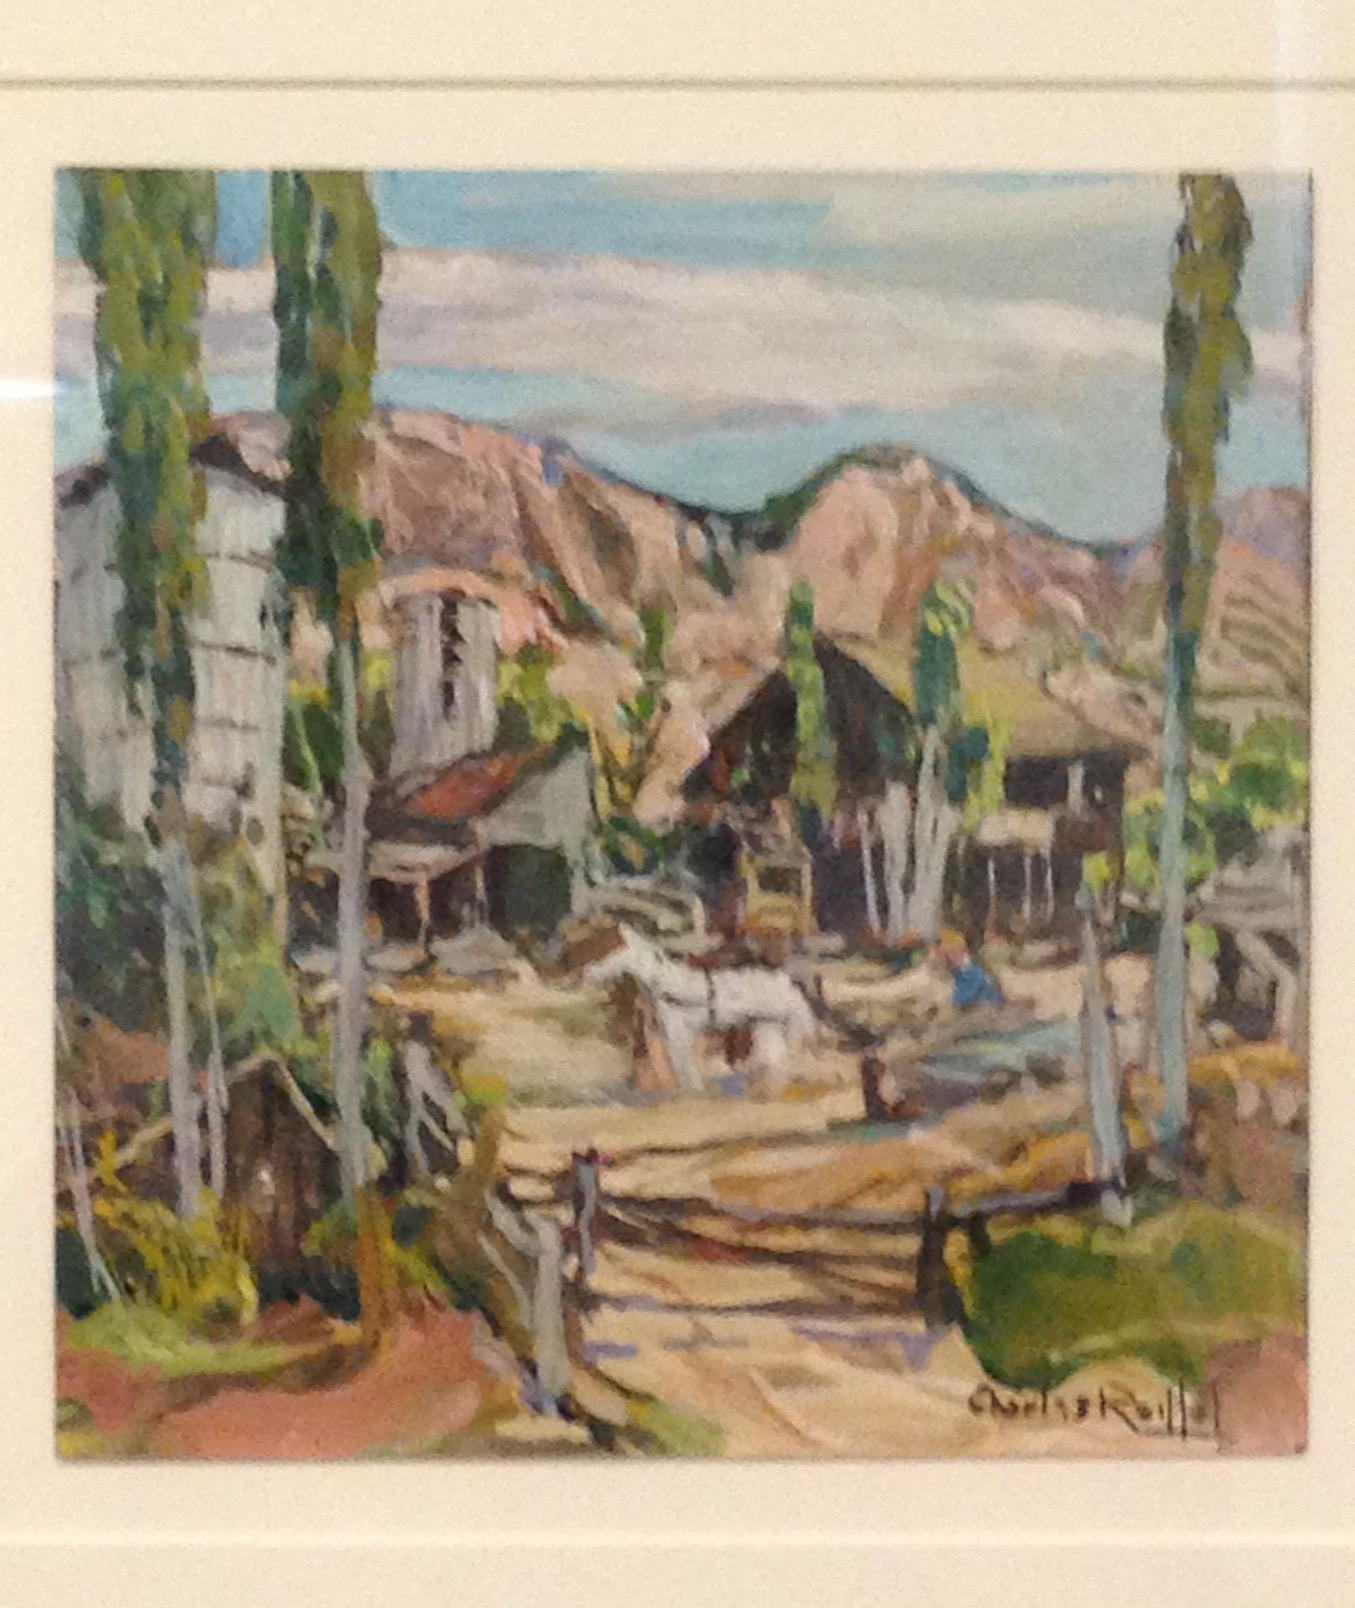 Charles Reiffel, Old Ranch Mission Valley, 1930